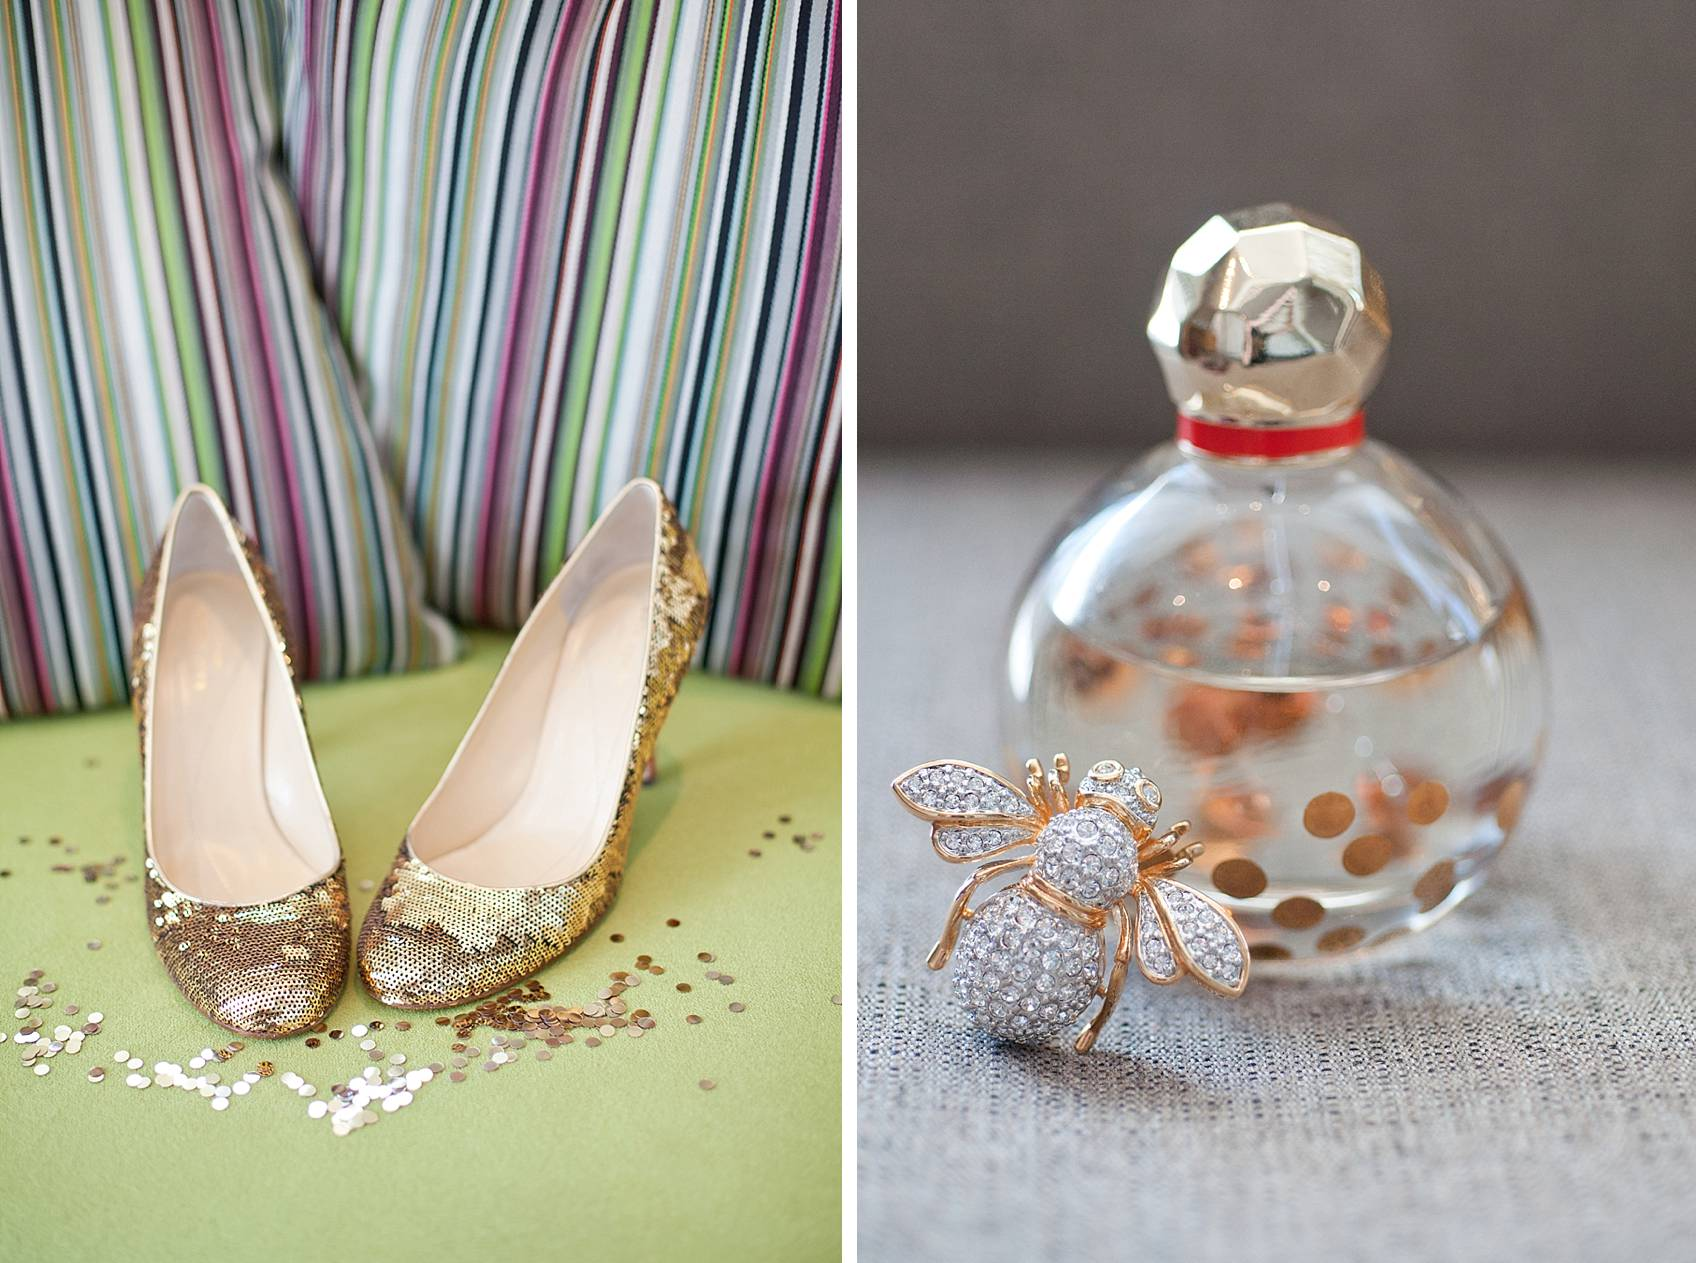 kate spade glitter heels with confetti and perfume with vintage brooch bumble bee